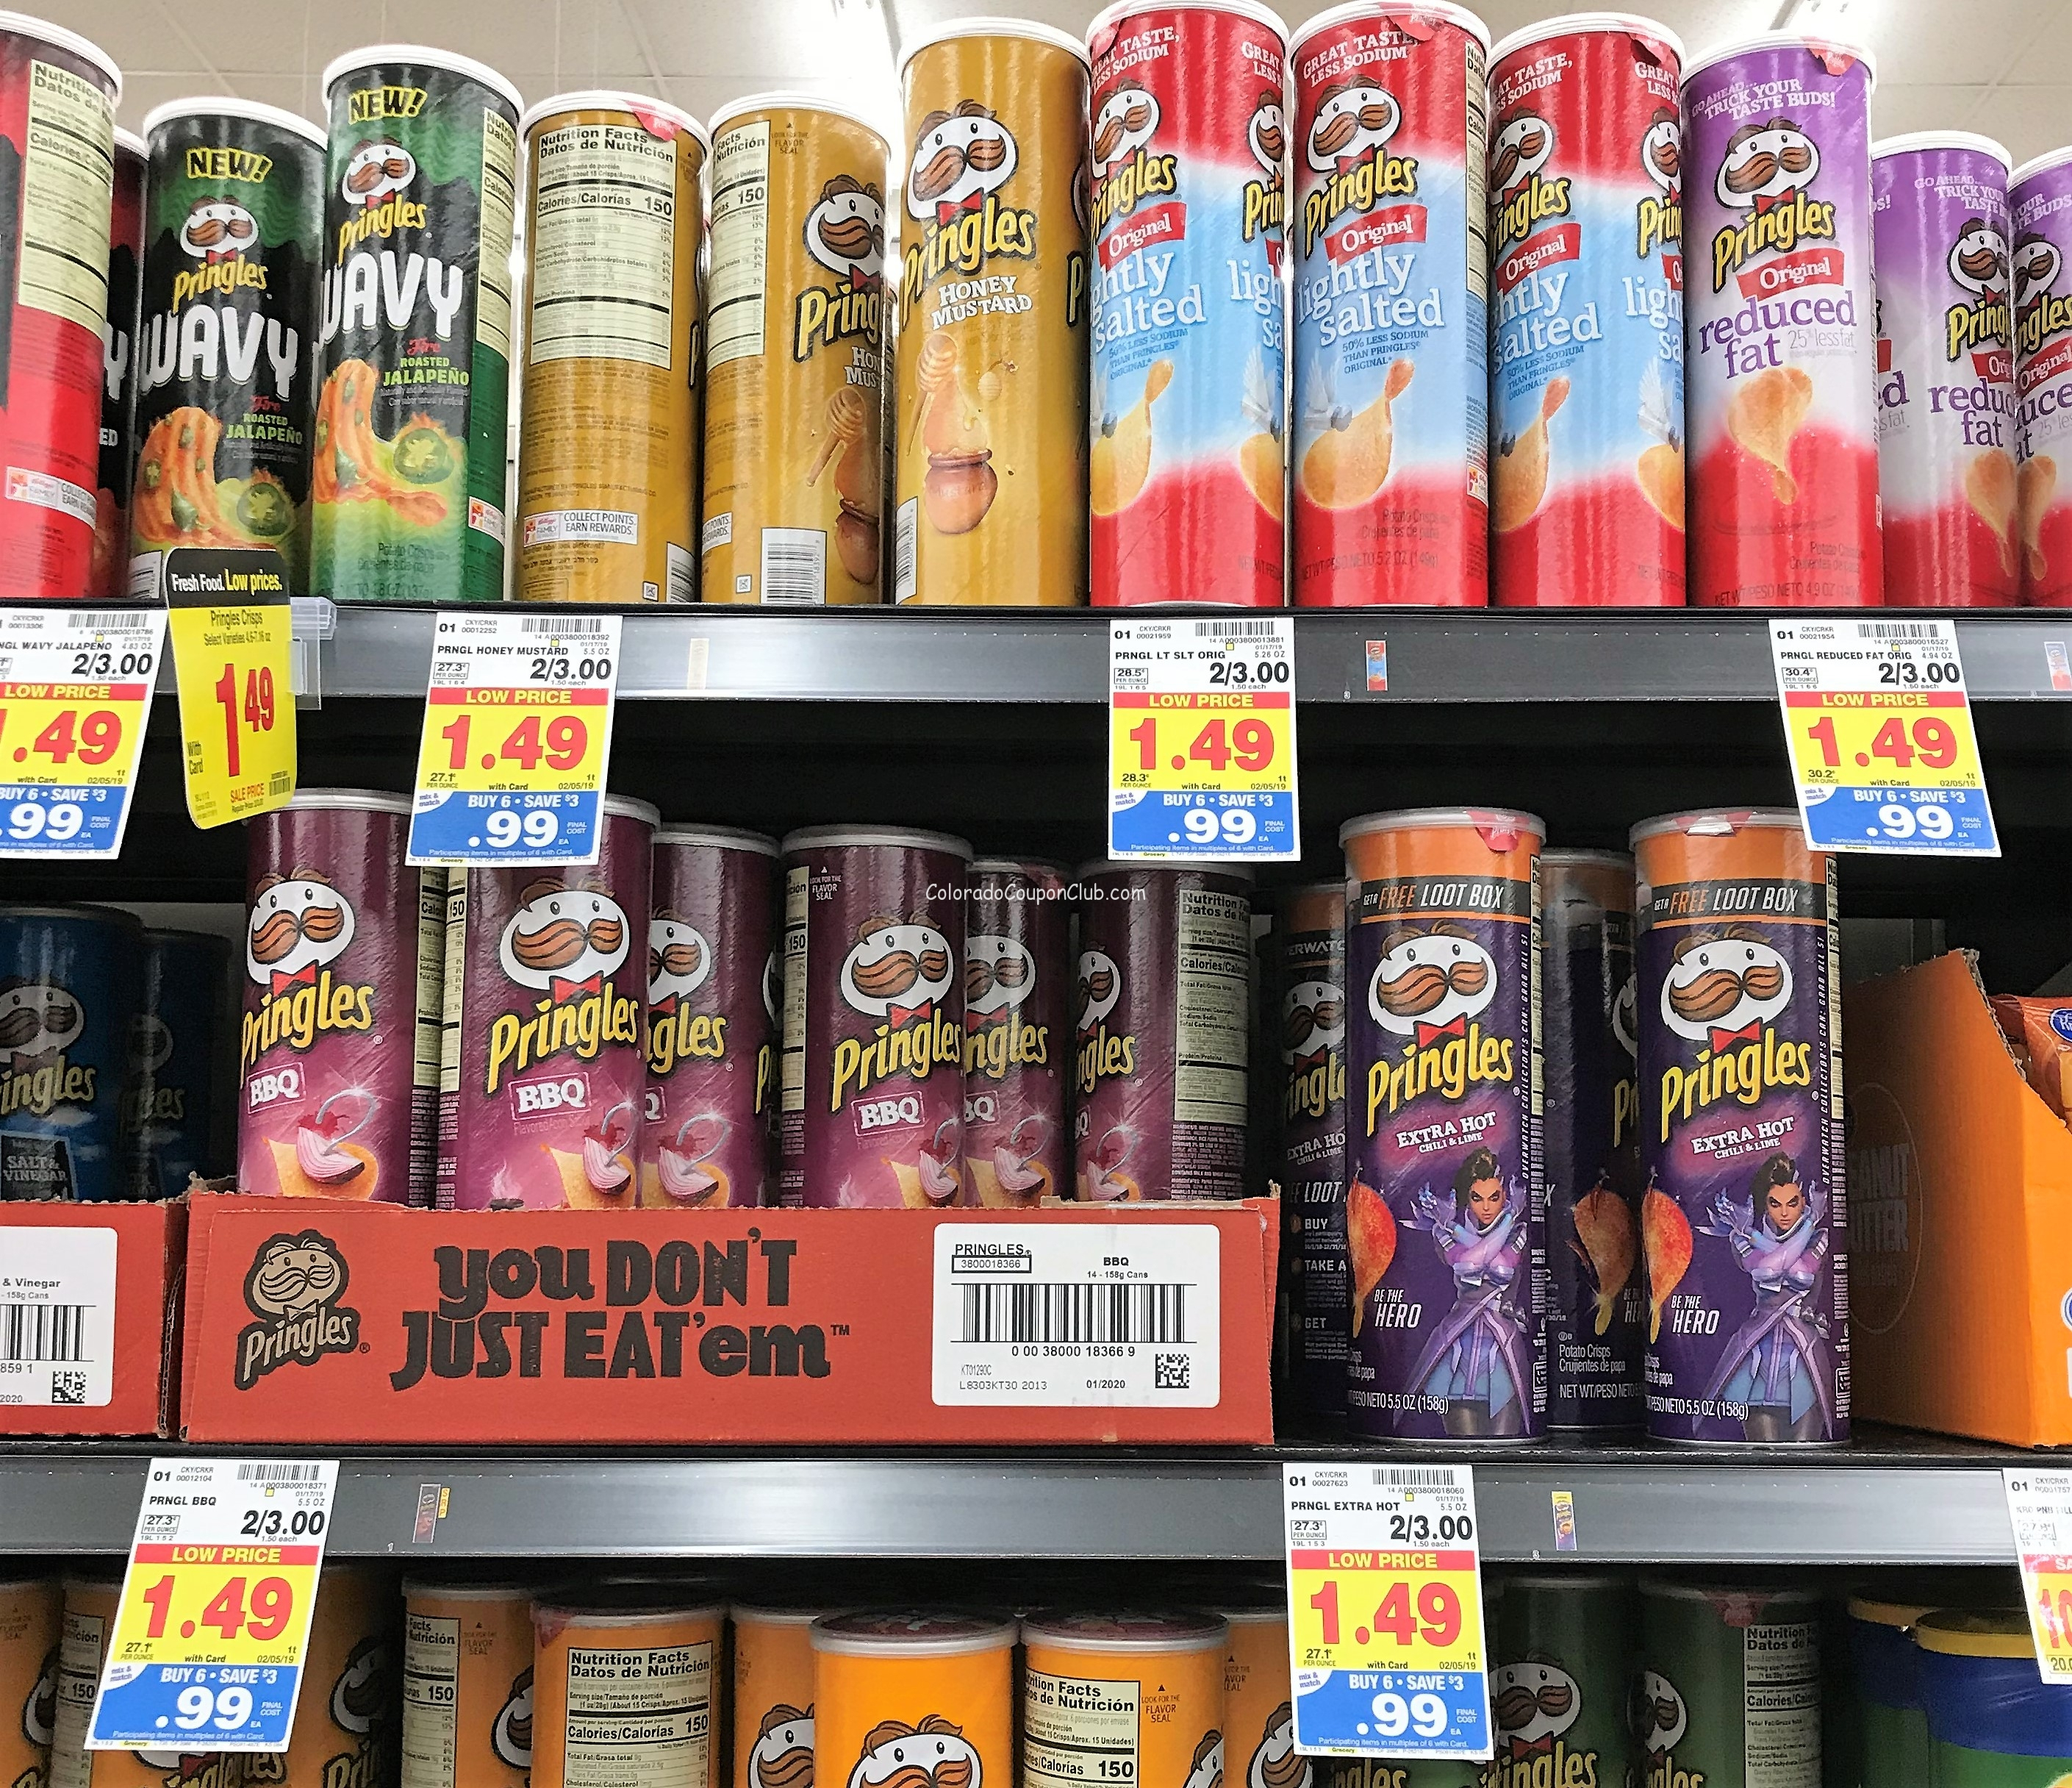 Stock Up! Pringles, Only $0.75 During The Mega Event At King Soopers - Free Printable Pringles Coupons